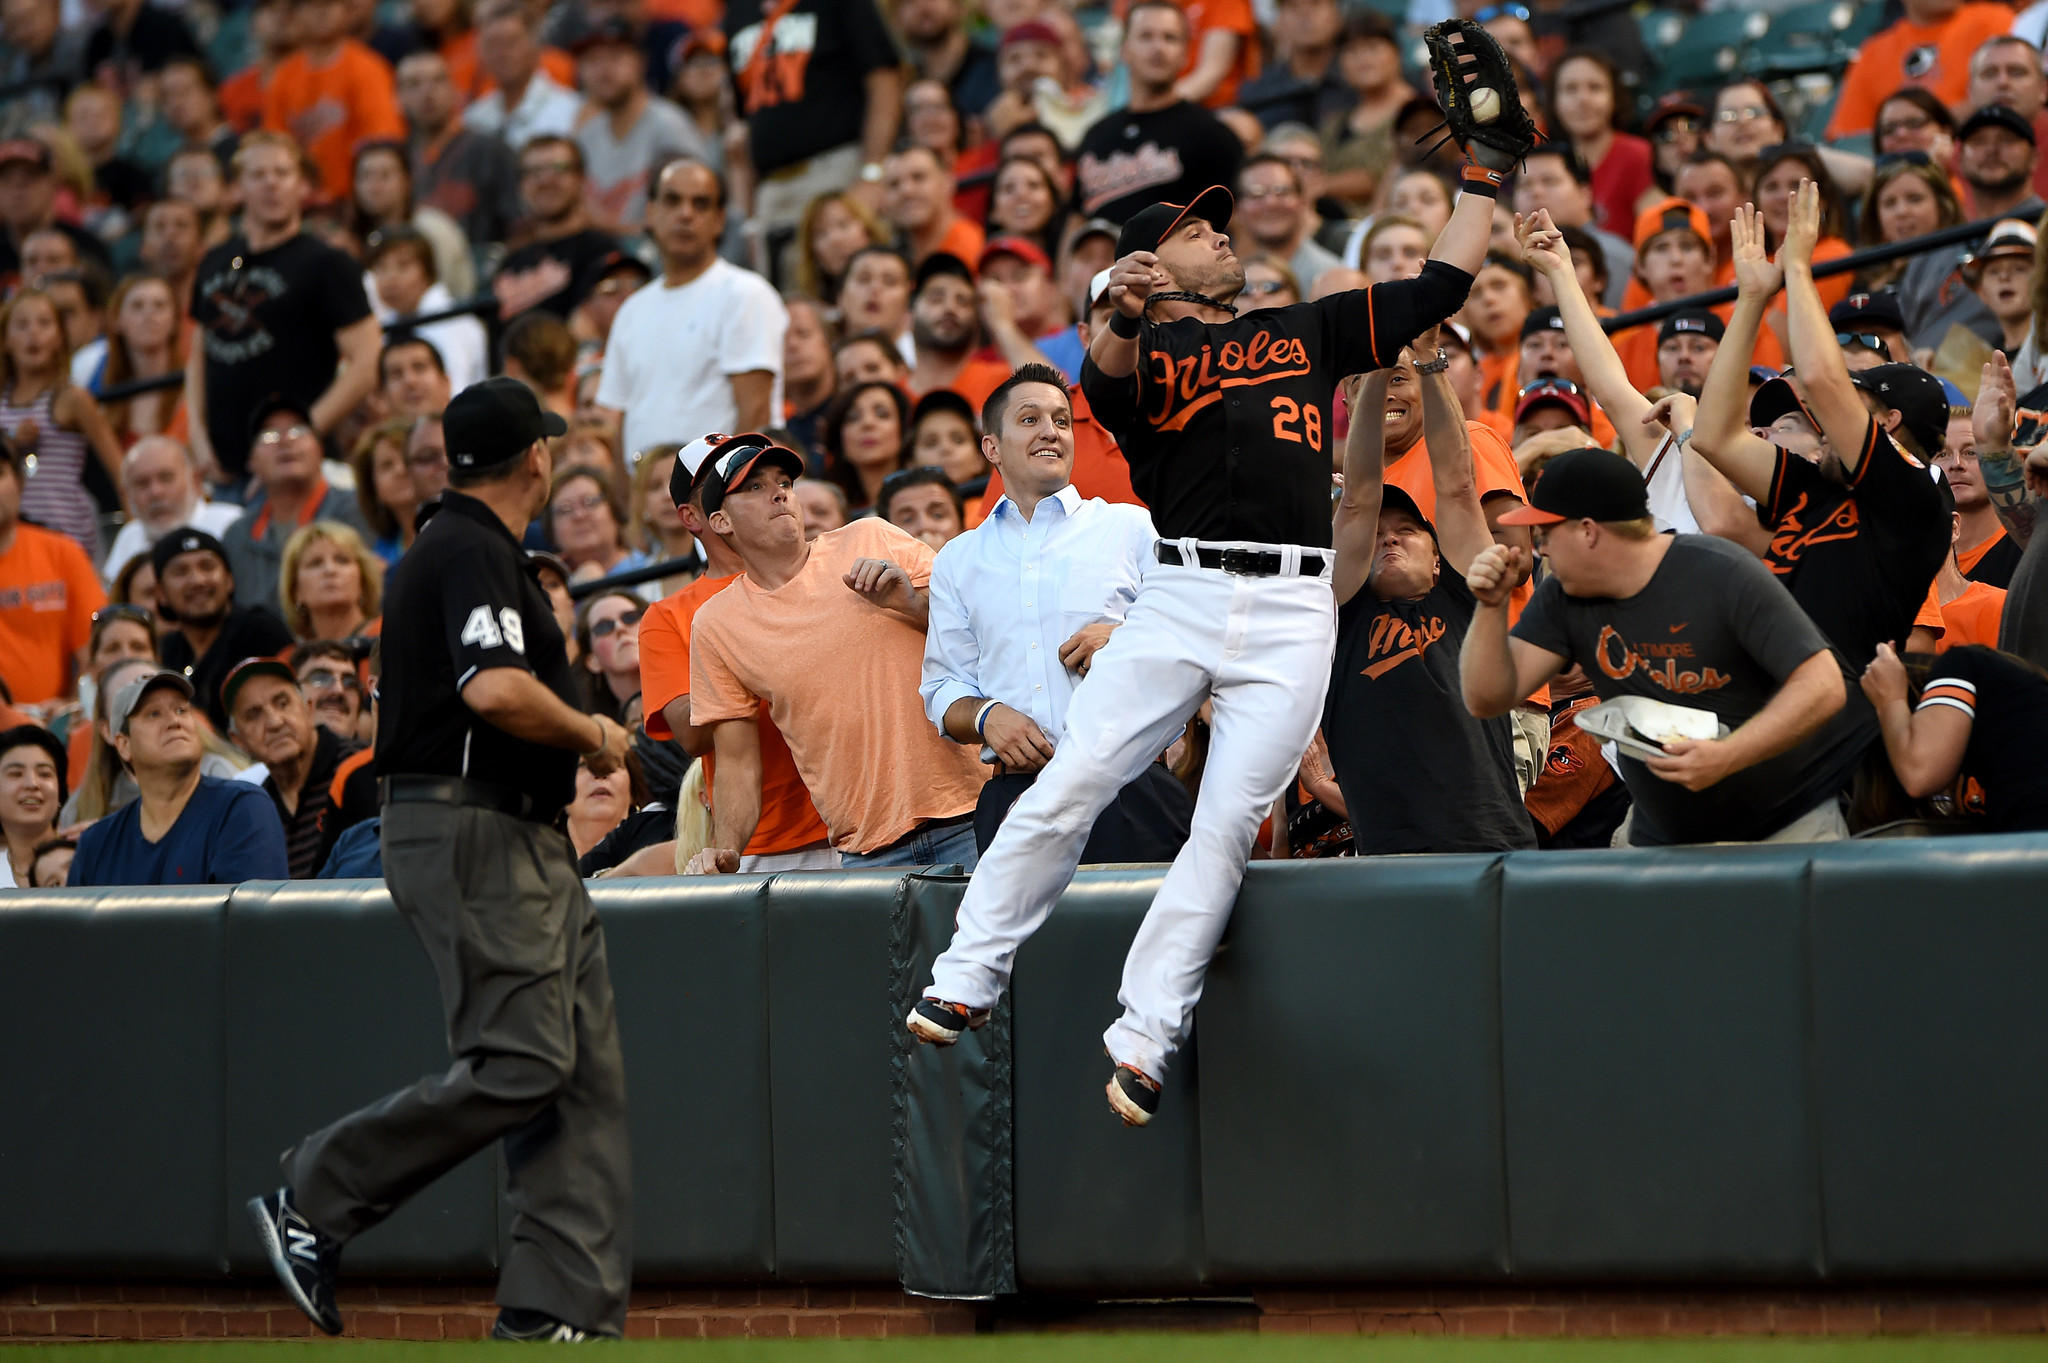 Steve Pearce makes a leaping catch in foul territory. He later left the game with an abdominal strain.